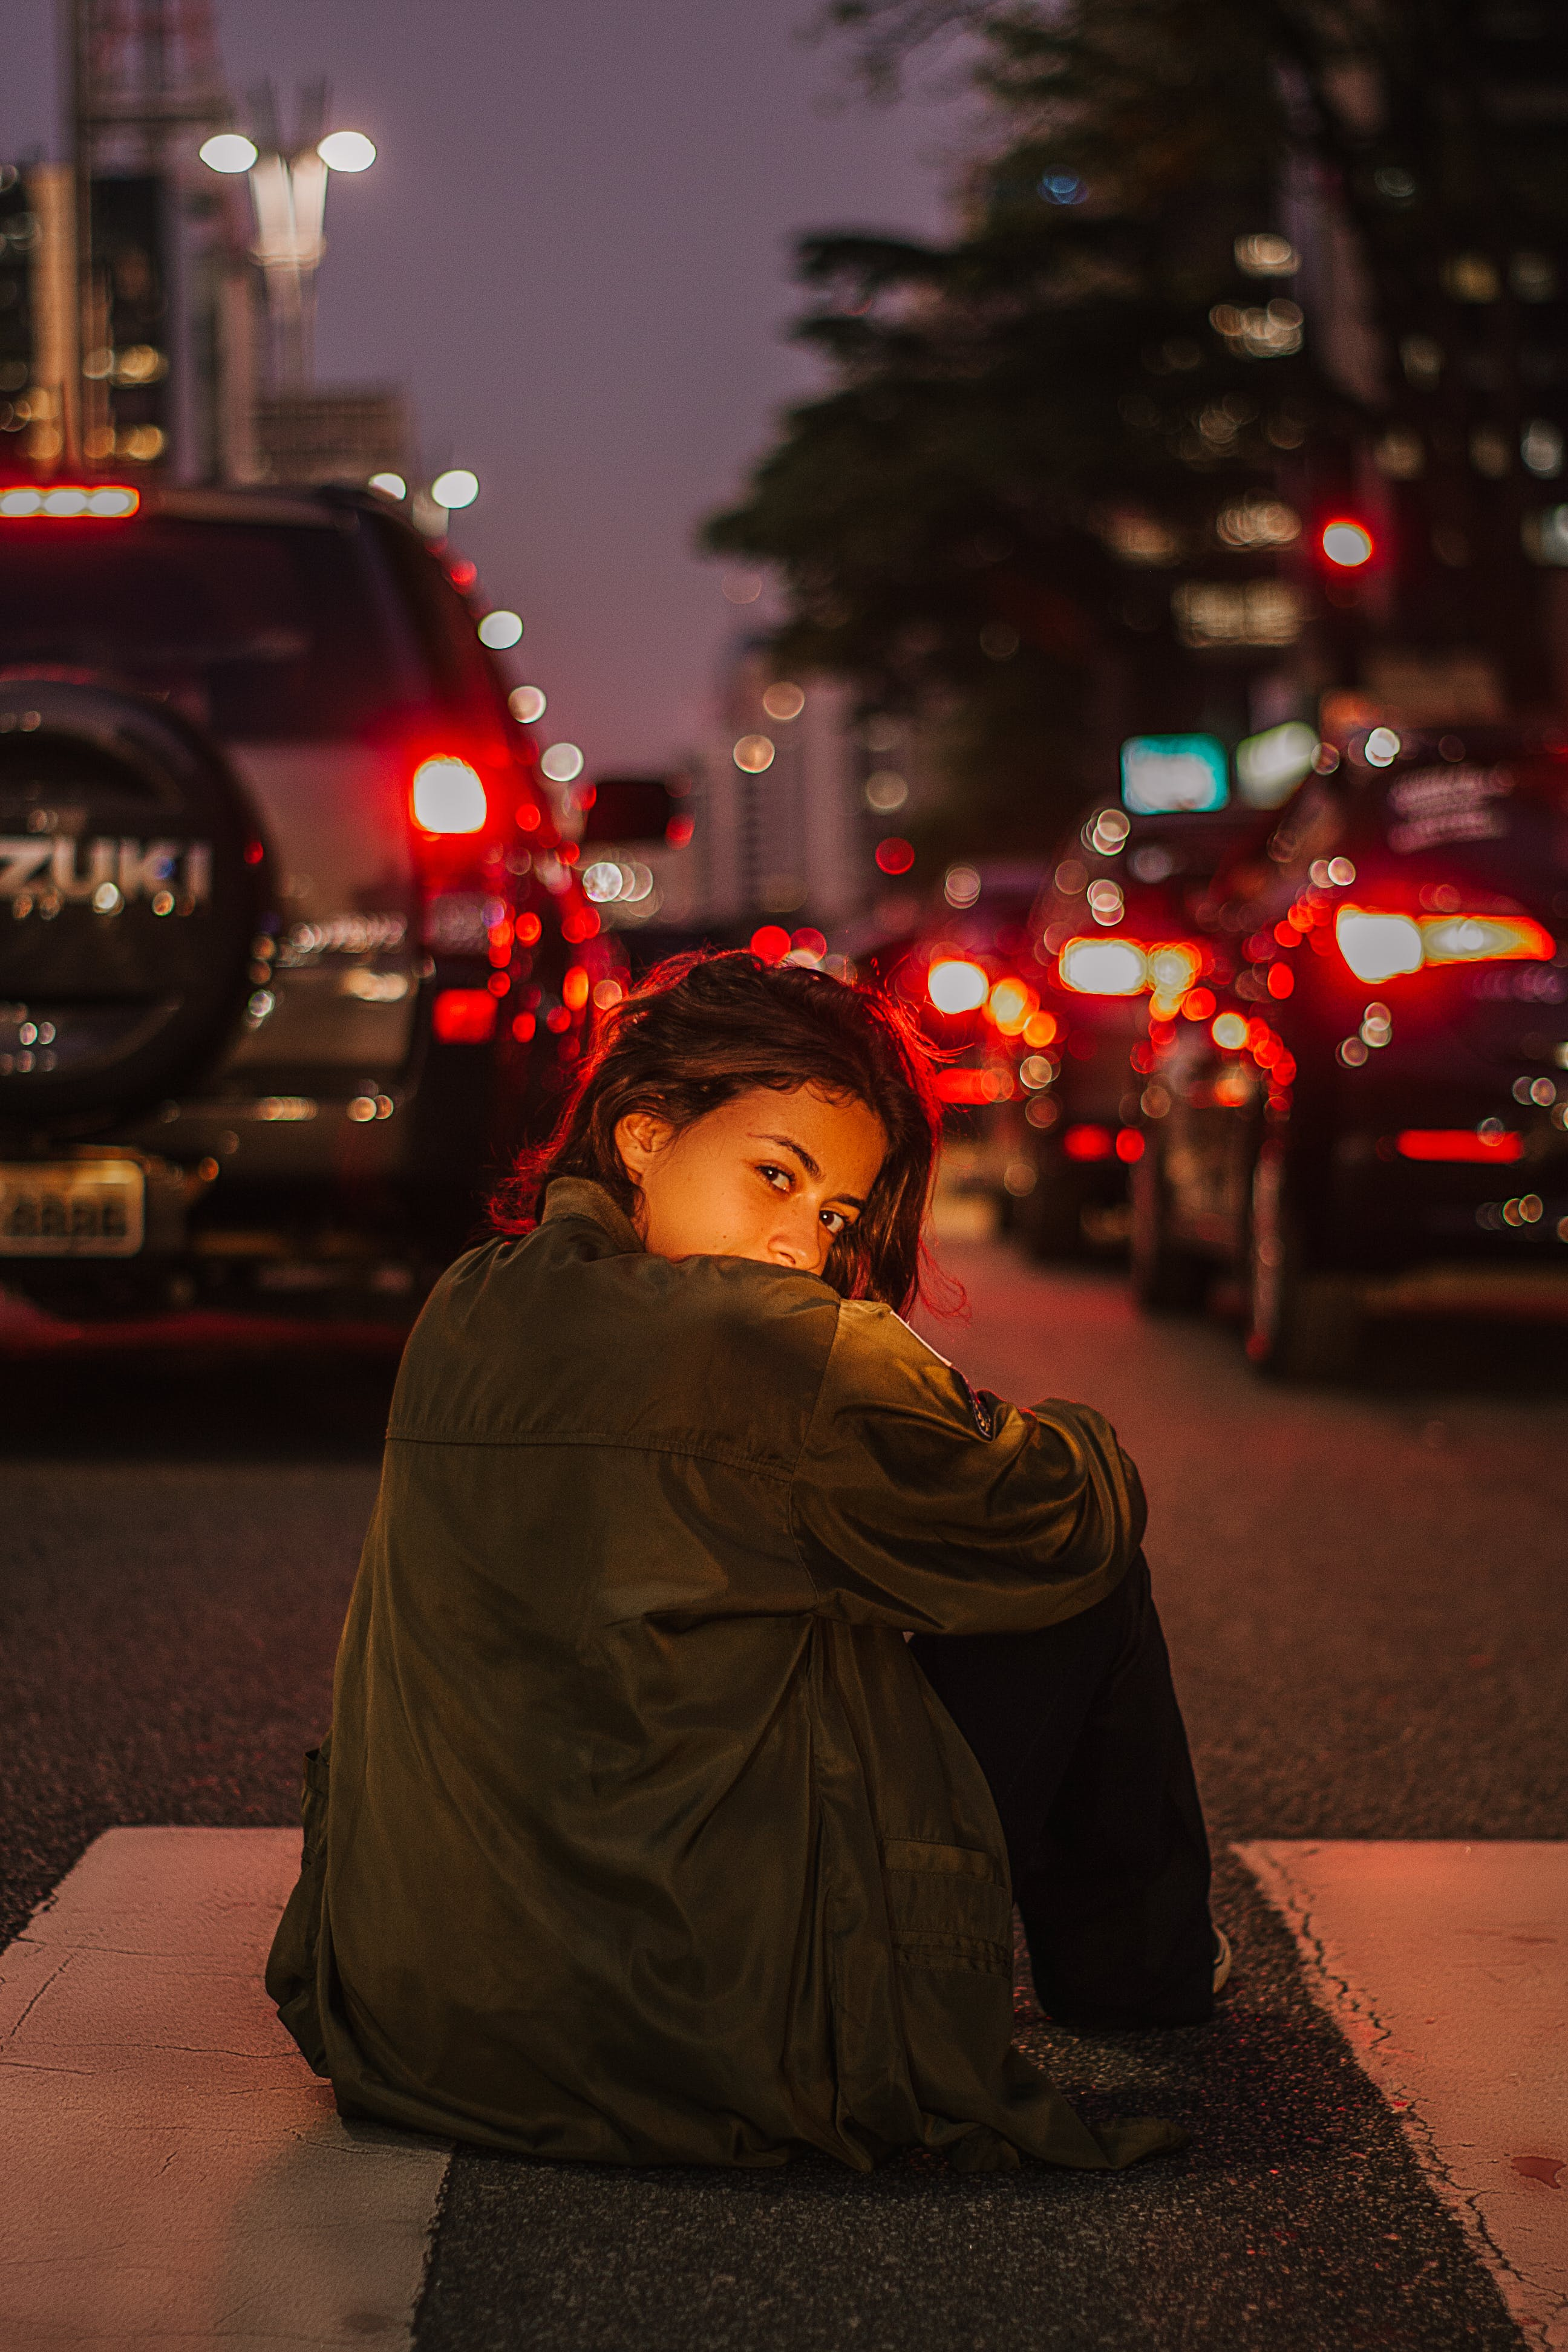 Woman Sitting on Road during Night Time